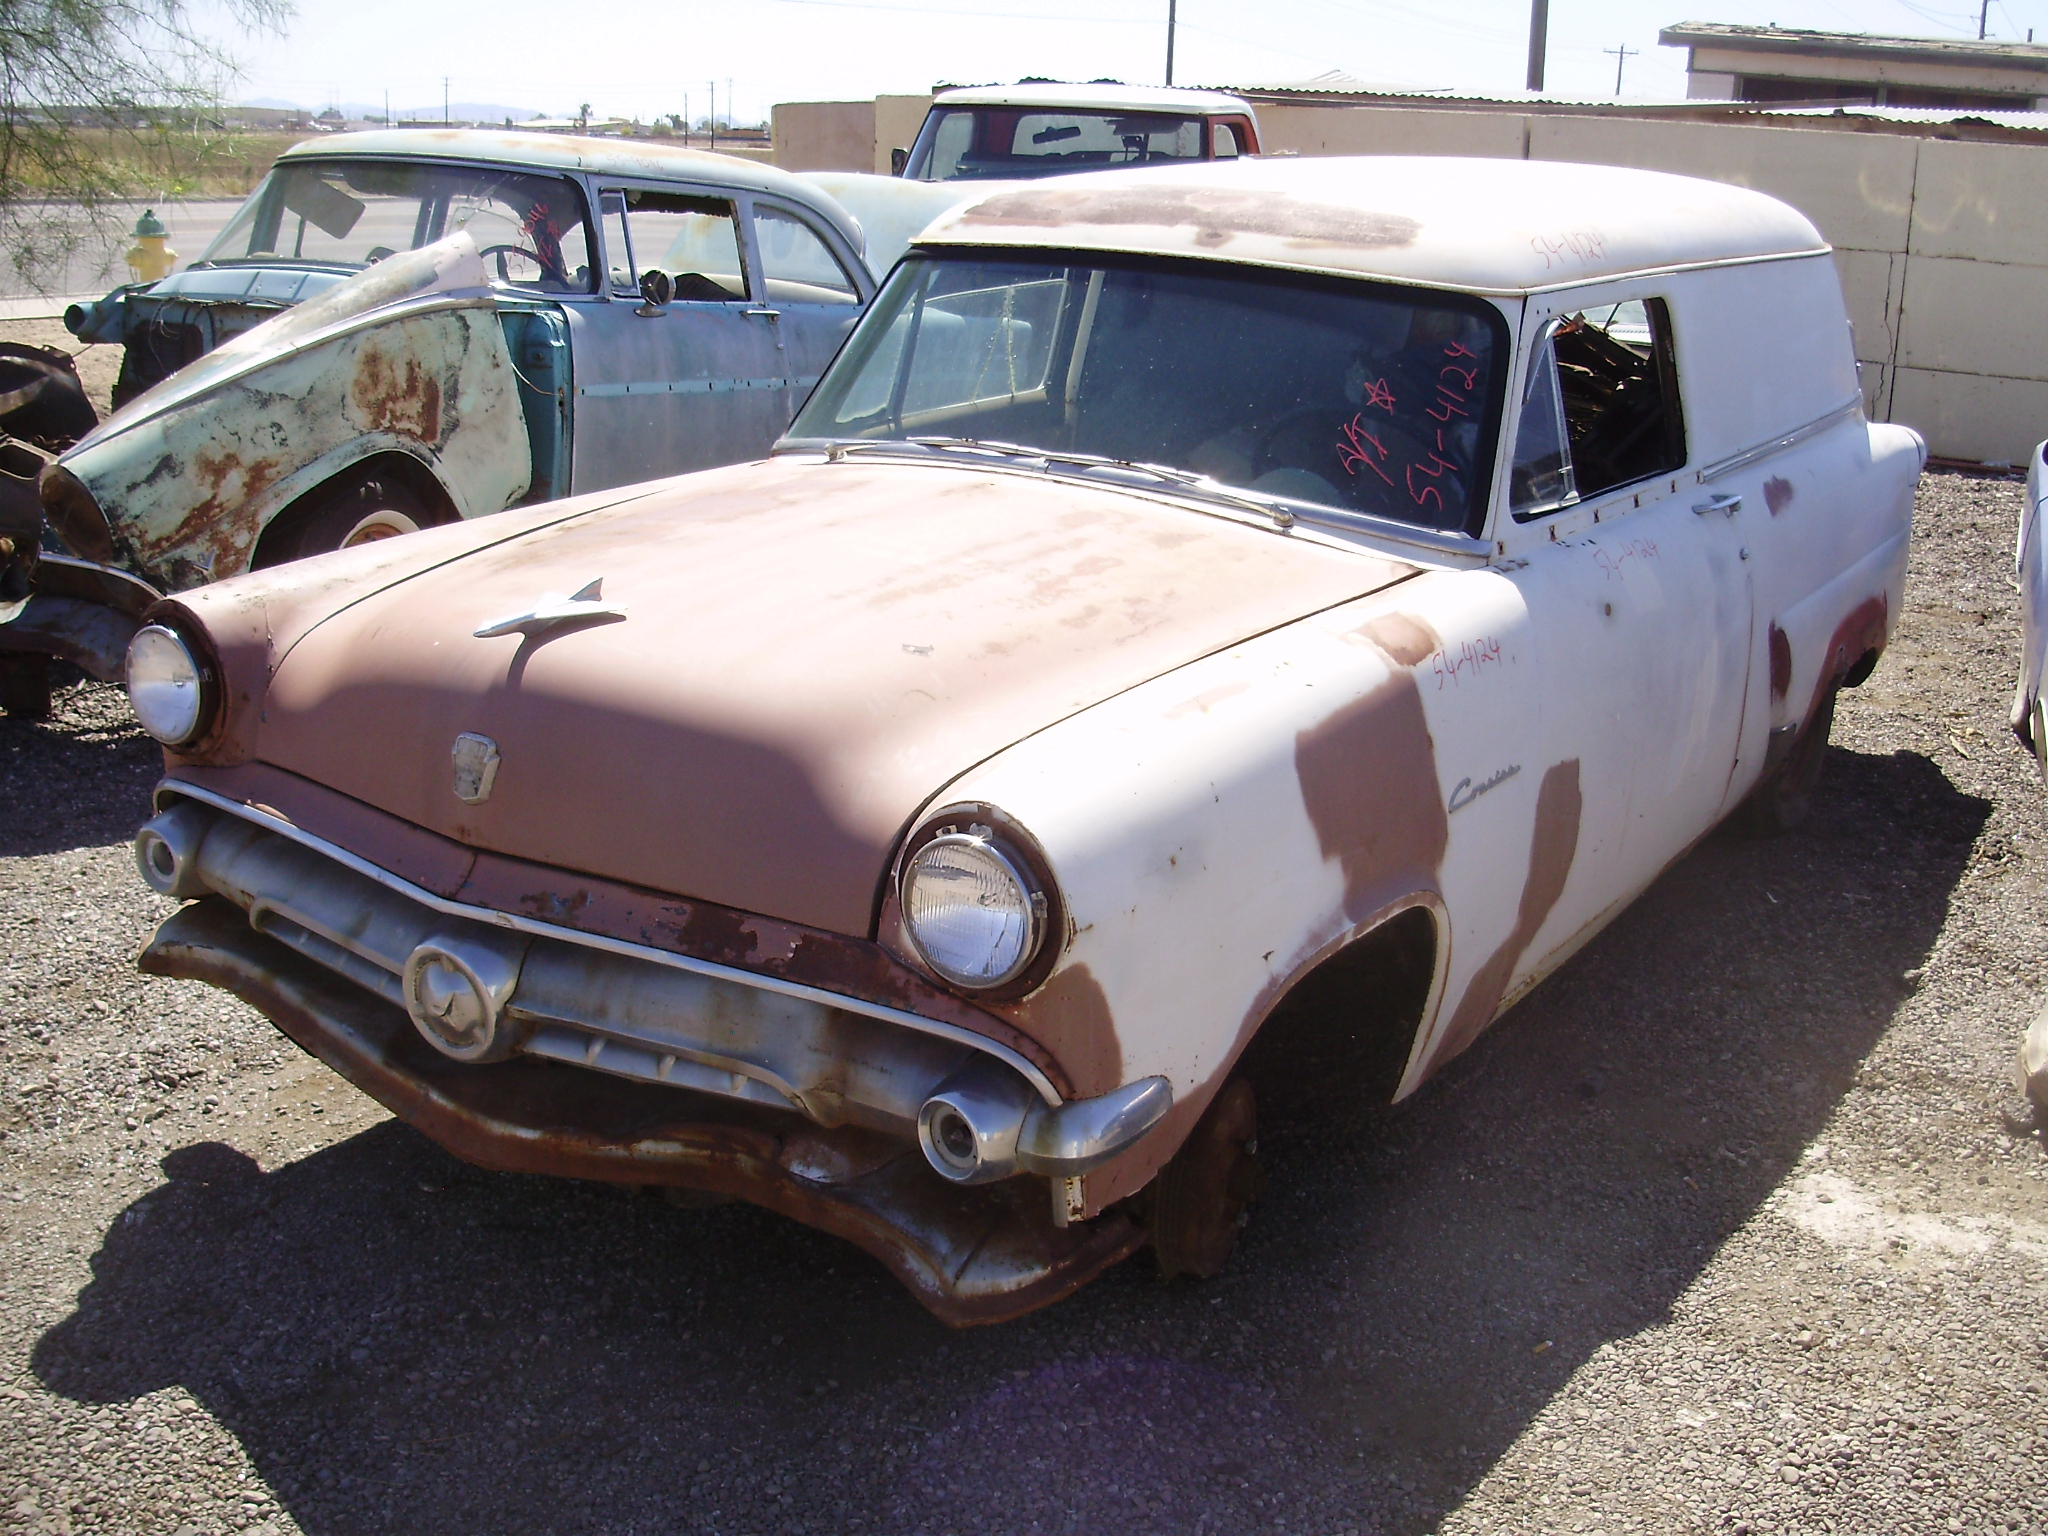 1954 Ford Ford Car (#54FO4124C) | Desert Valley Auto Parts - photo#7